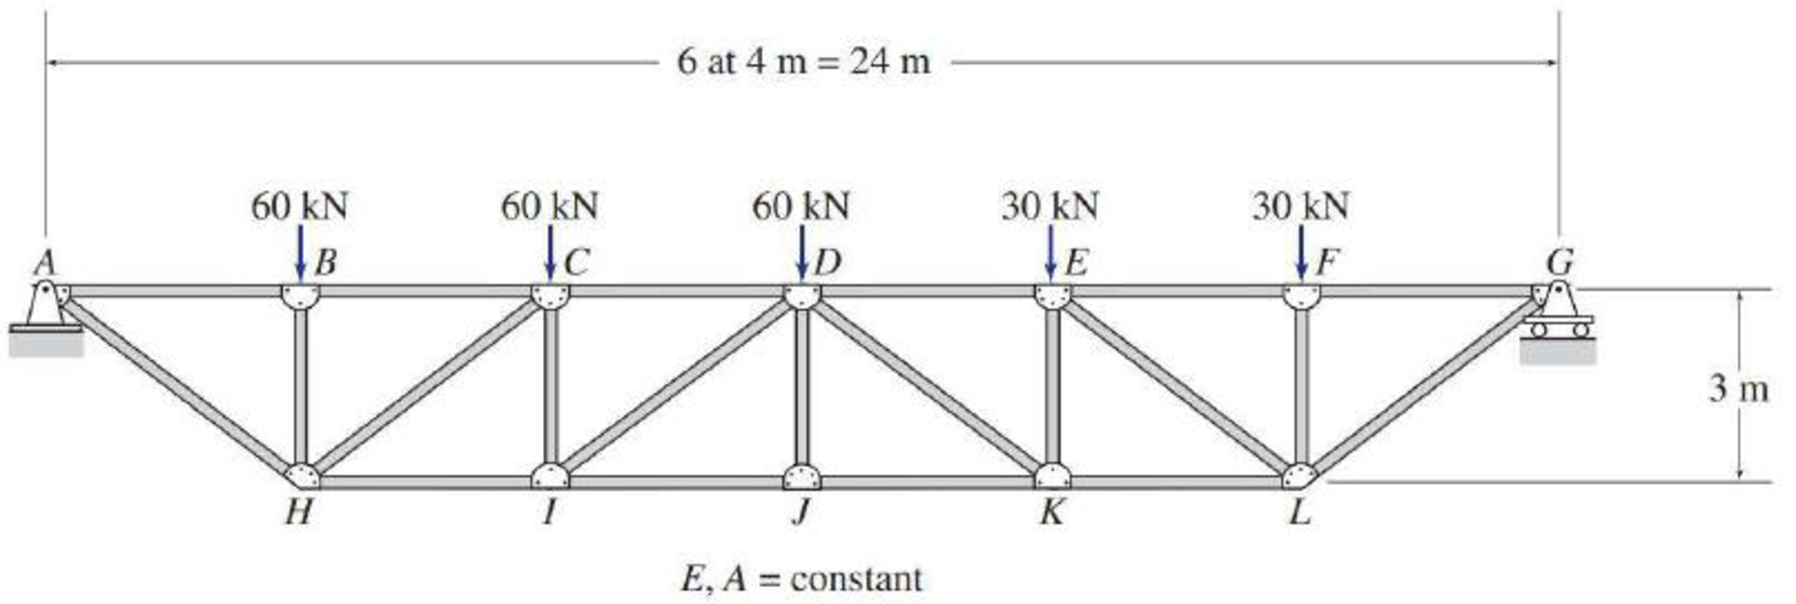 Chapter 10, Problem 4P, 10.1 through 10.15 Determine the symmetric and antisymmetric components of the loadings shown in